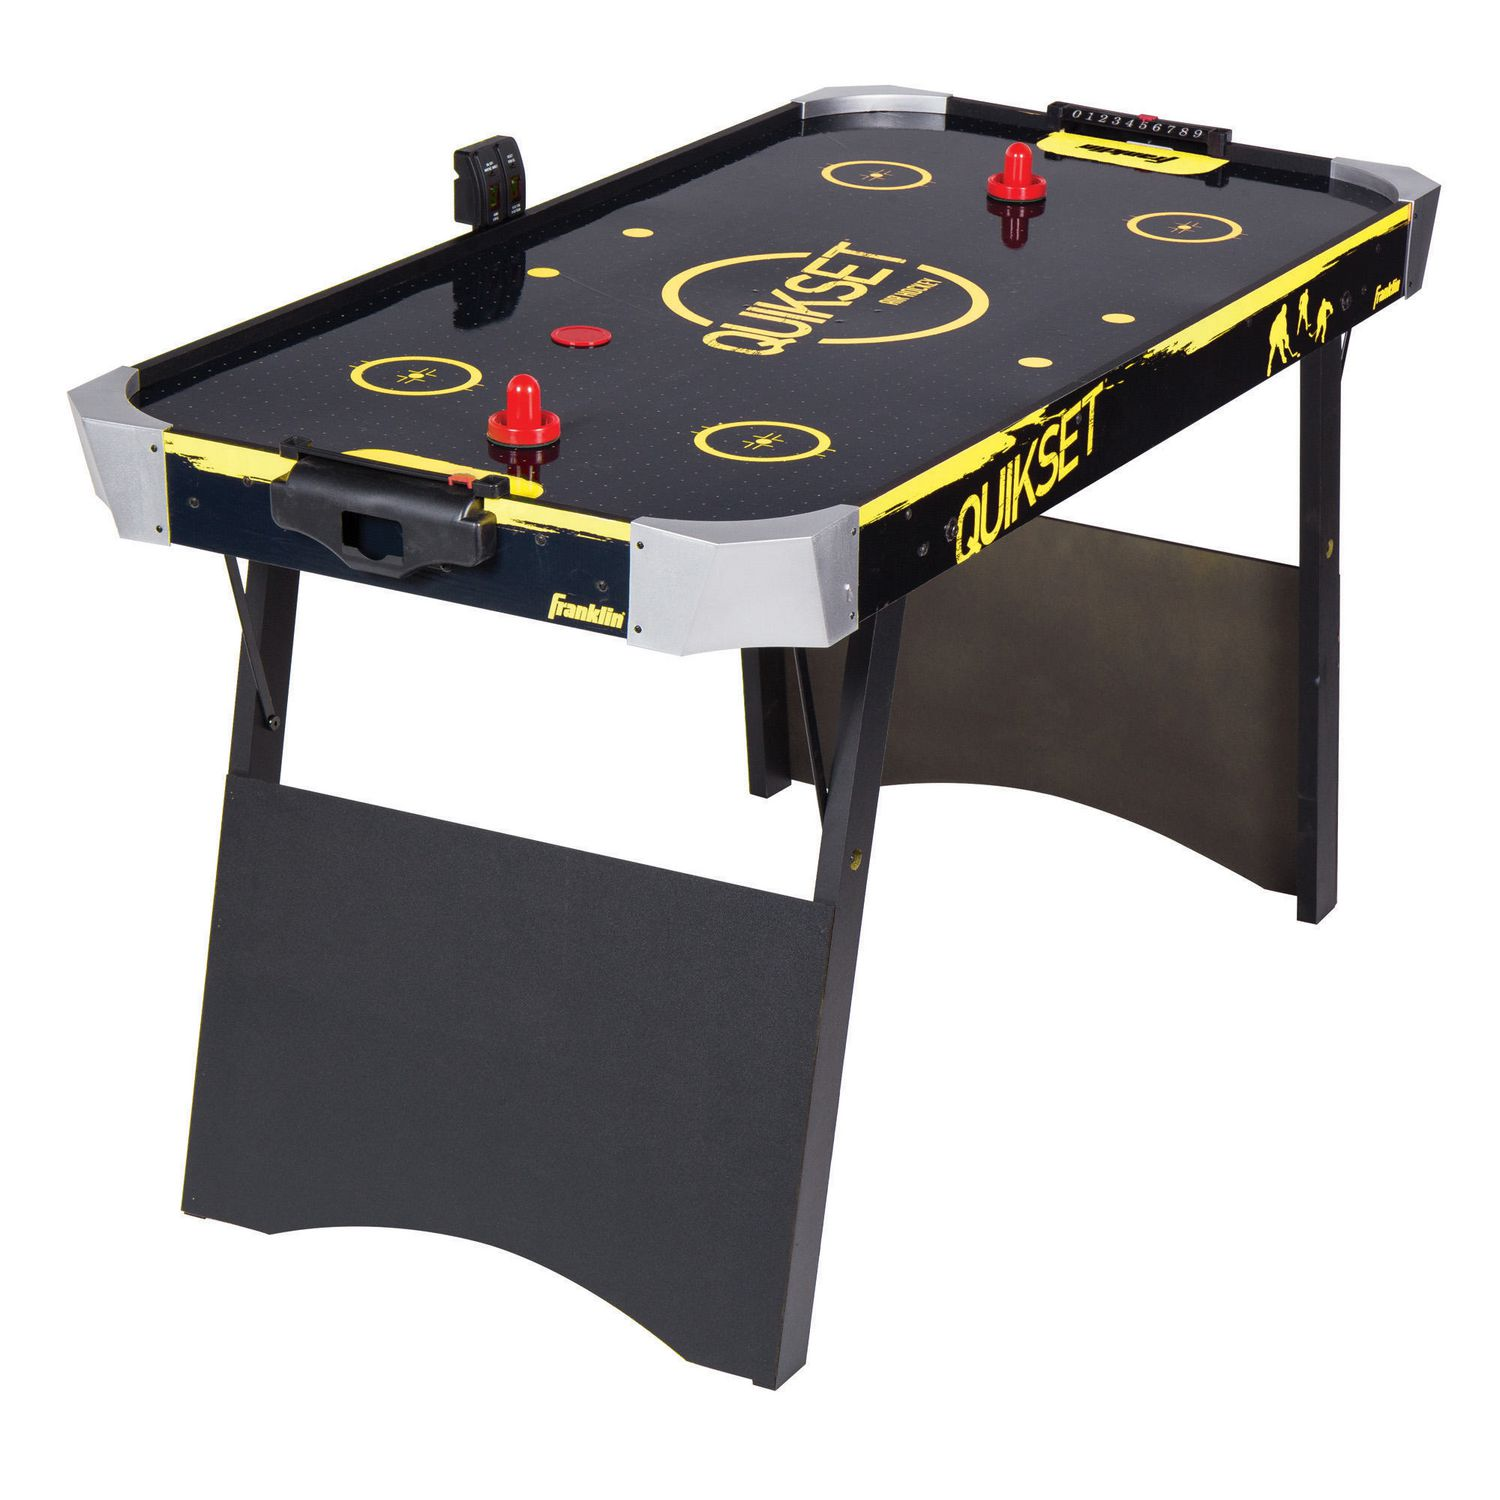 hockey table ride air gamerooms games barron products nj player